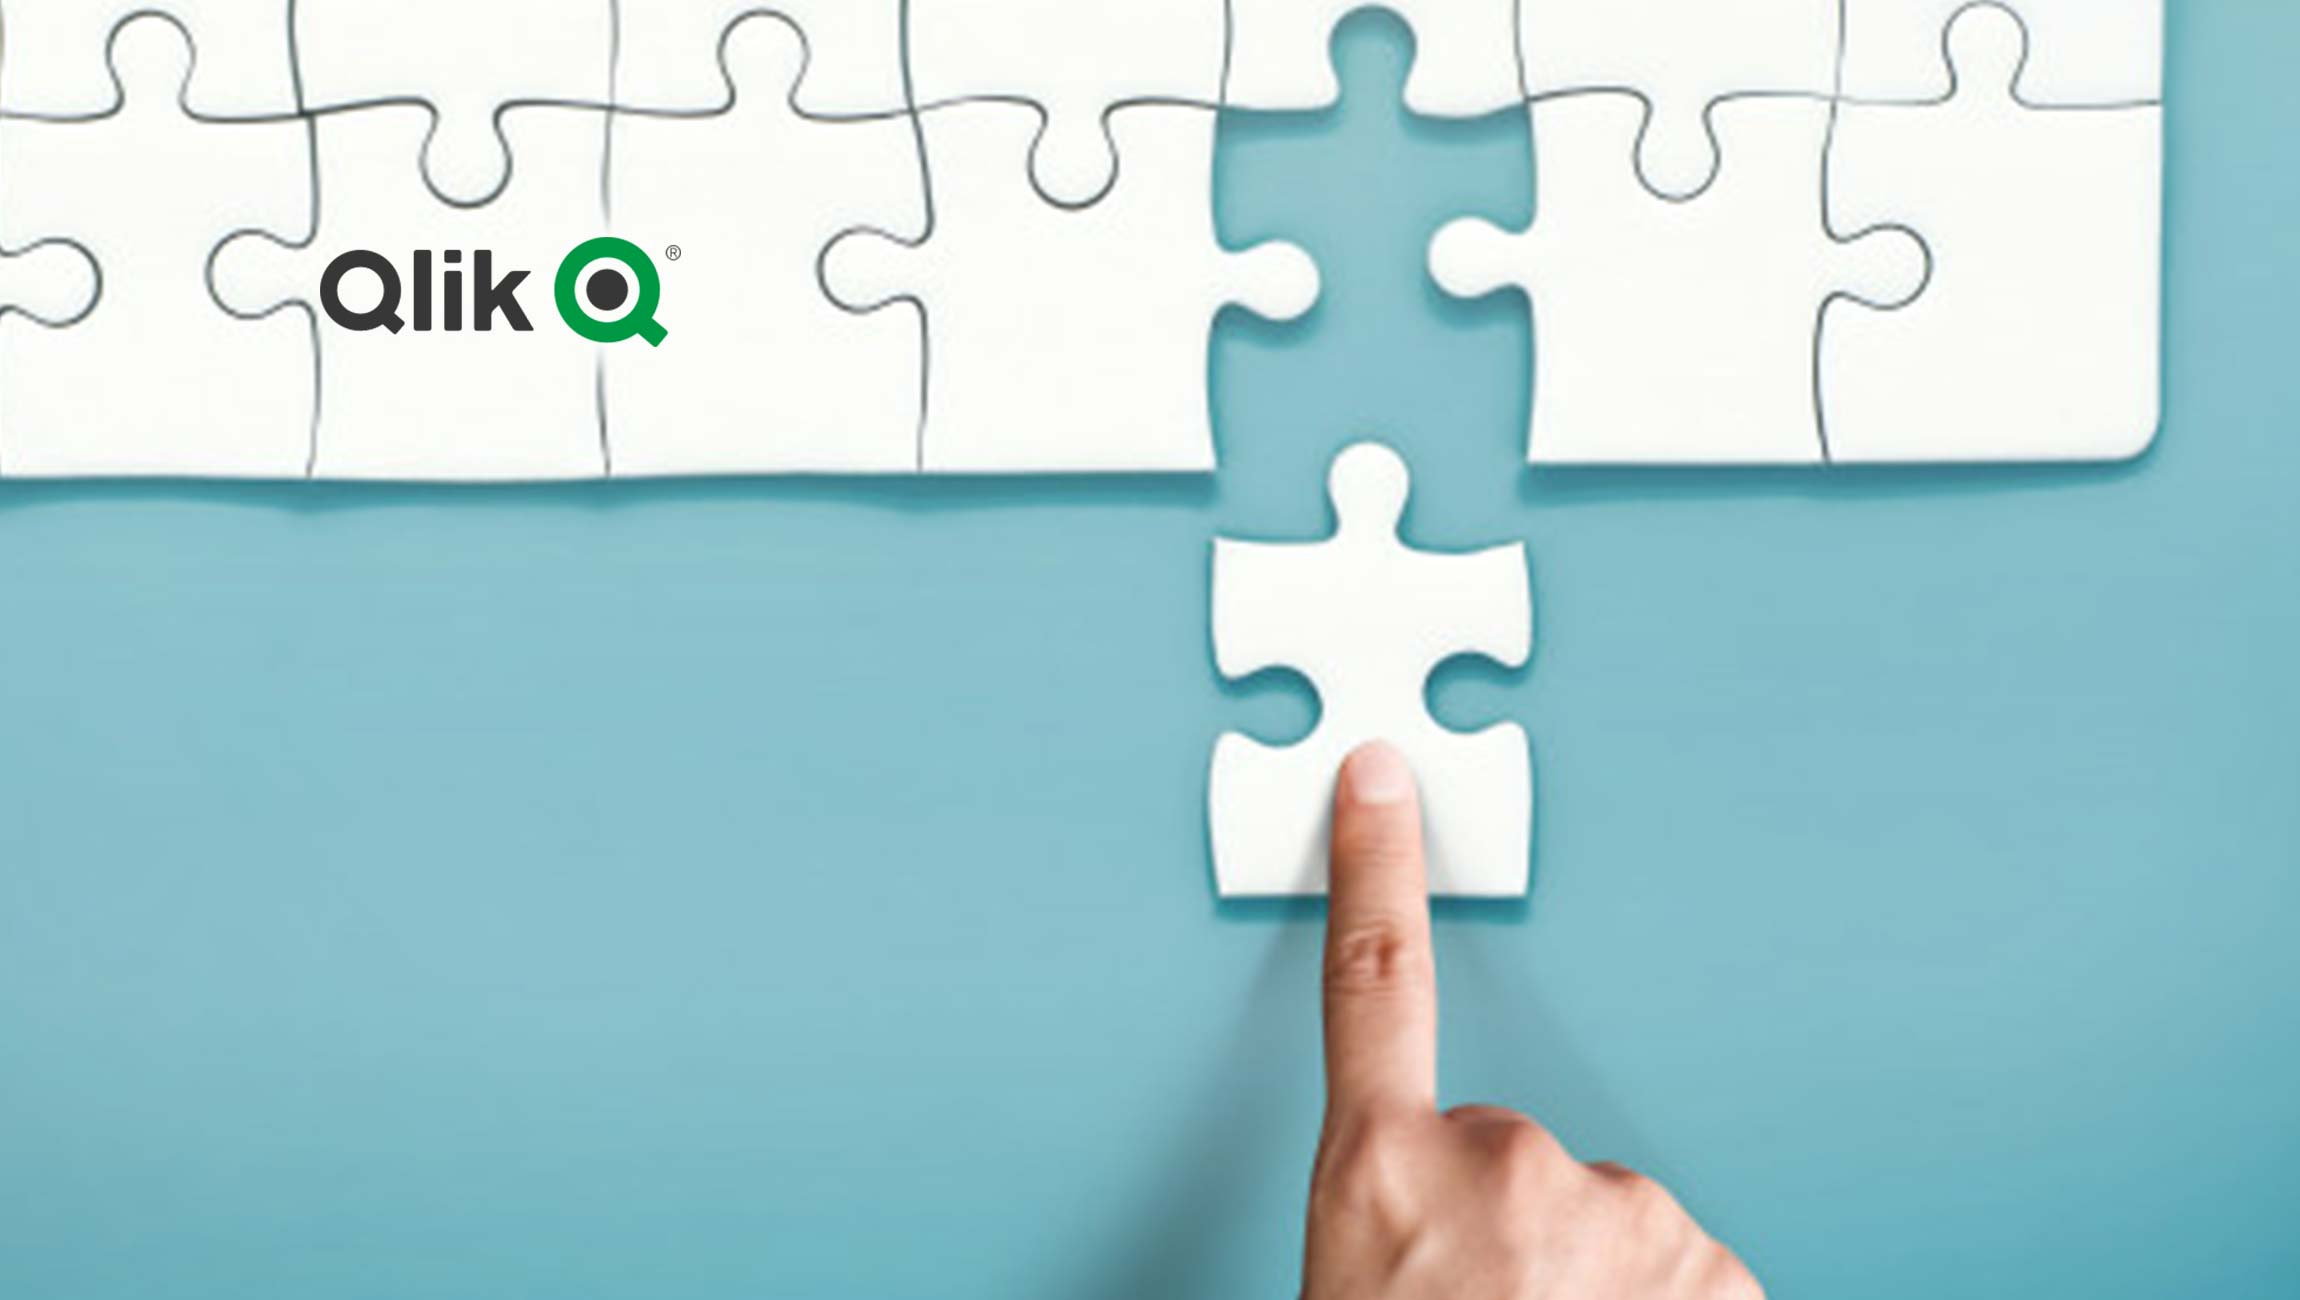 Qlik Expands Strategic Partnership with Databricks with Support for Delta Sharing